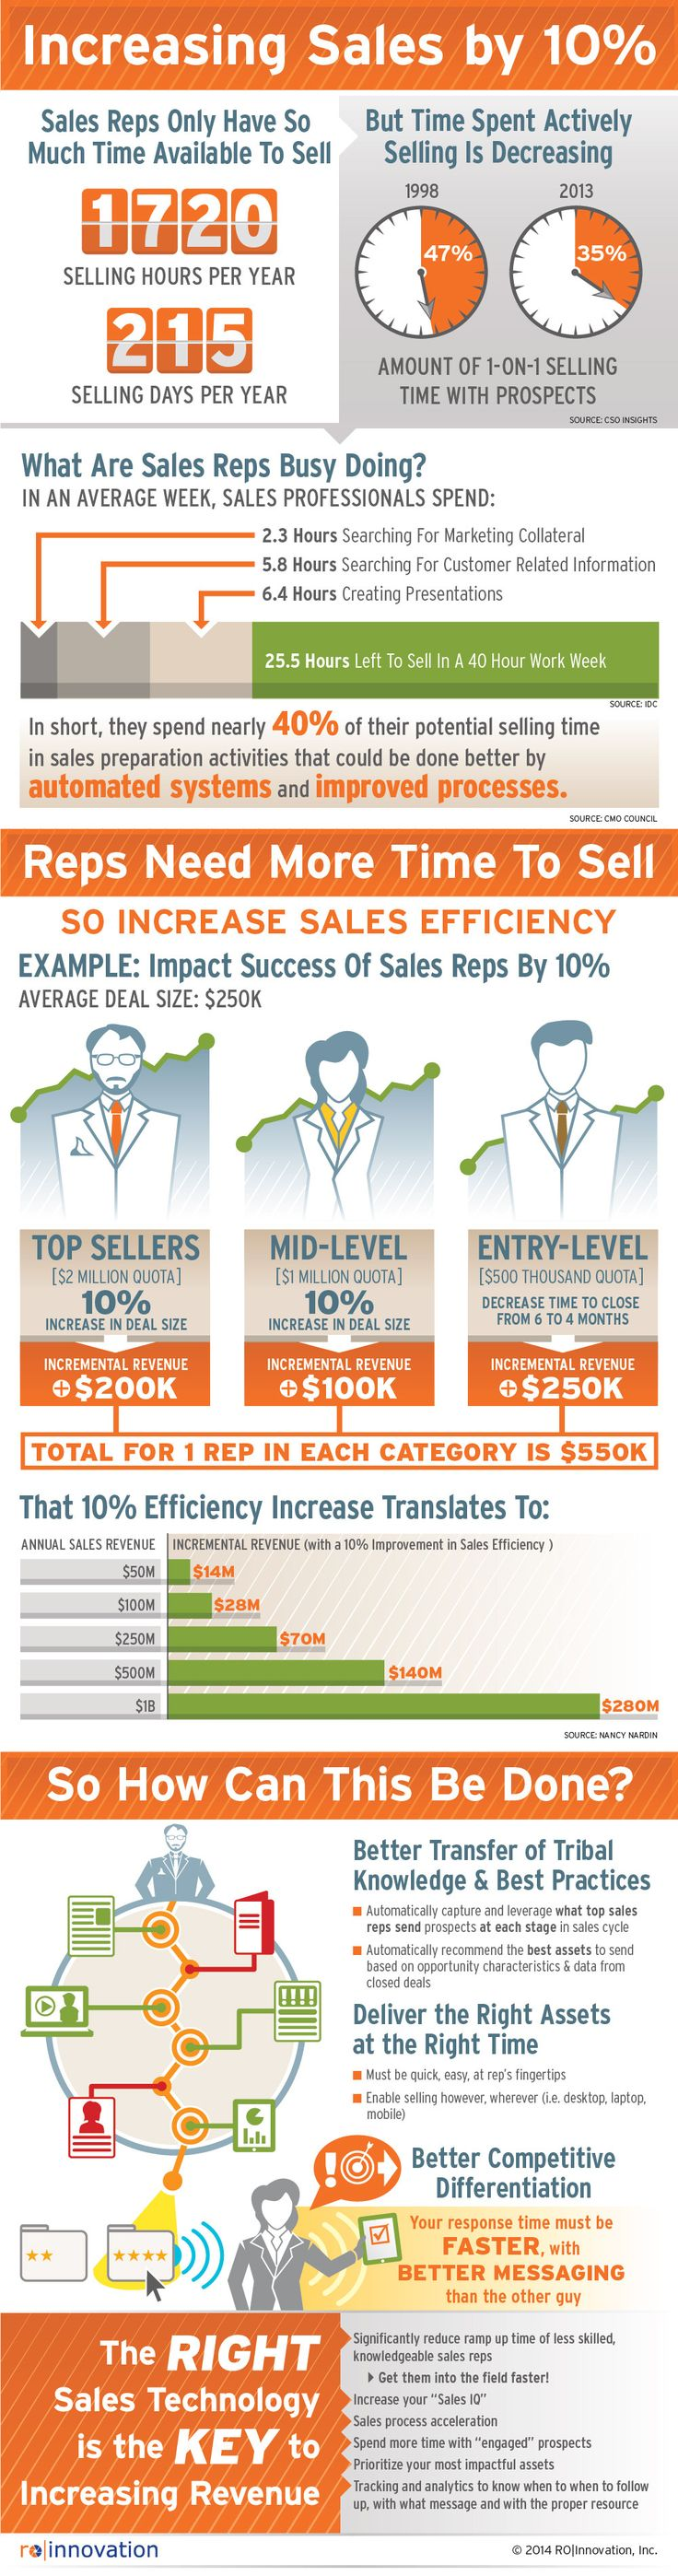 How to Increase Sales by 10 Percent #infographic #Sales #Business #Marketing. http://www.top-sales-results.com/